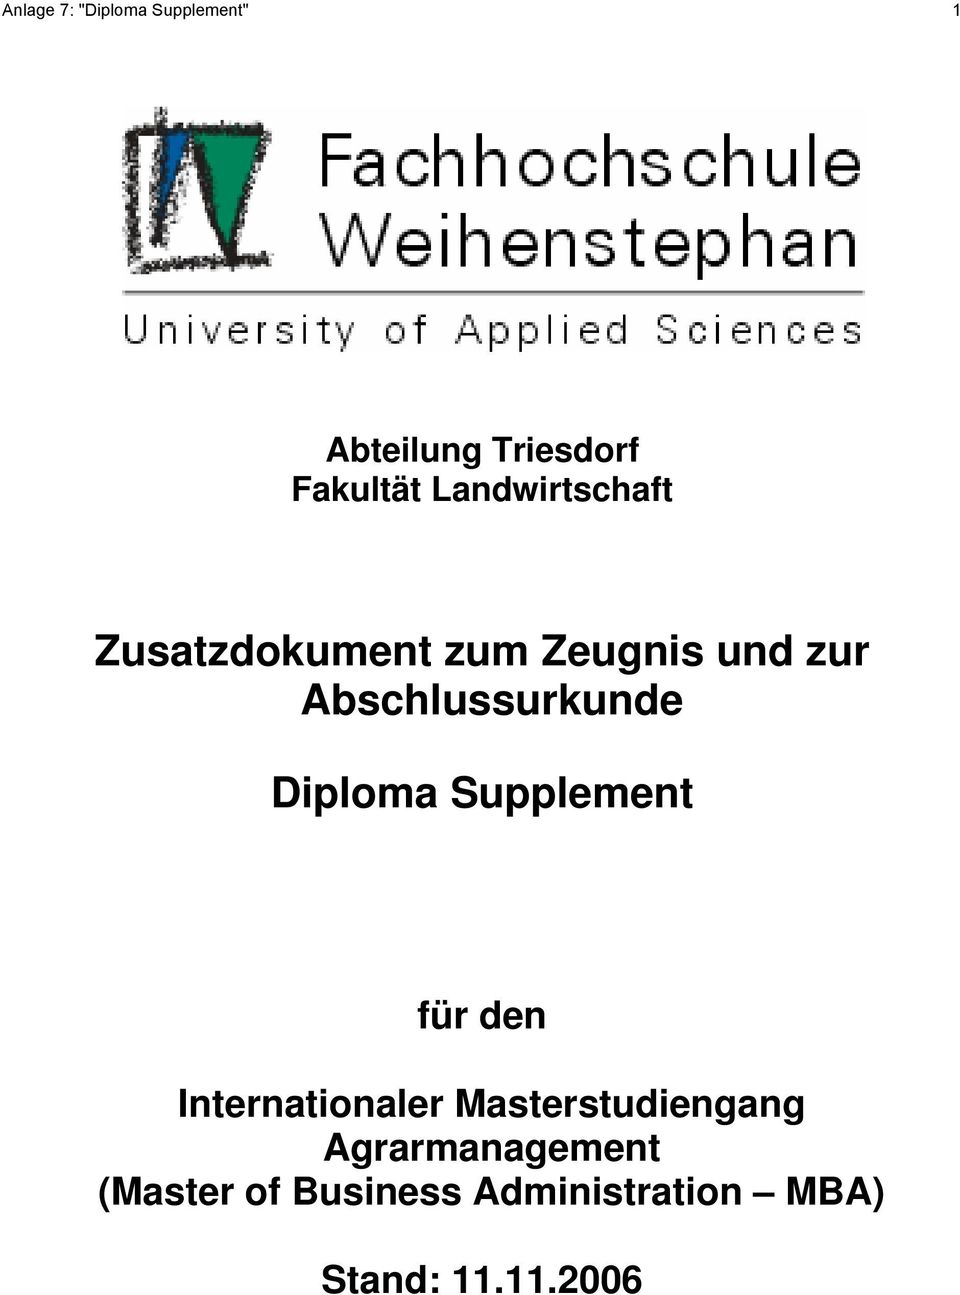 Abschlussurkunde Diploma Supplement für den Internationaler